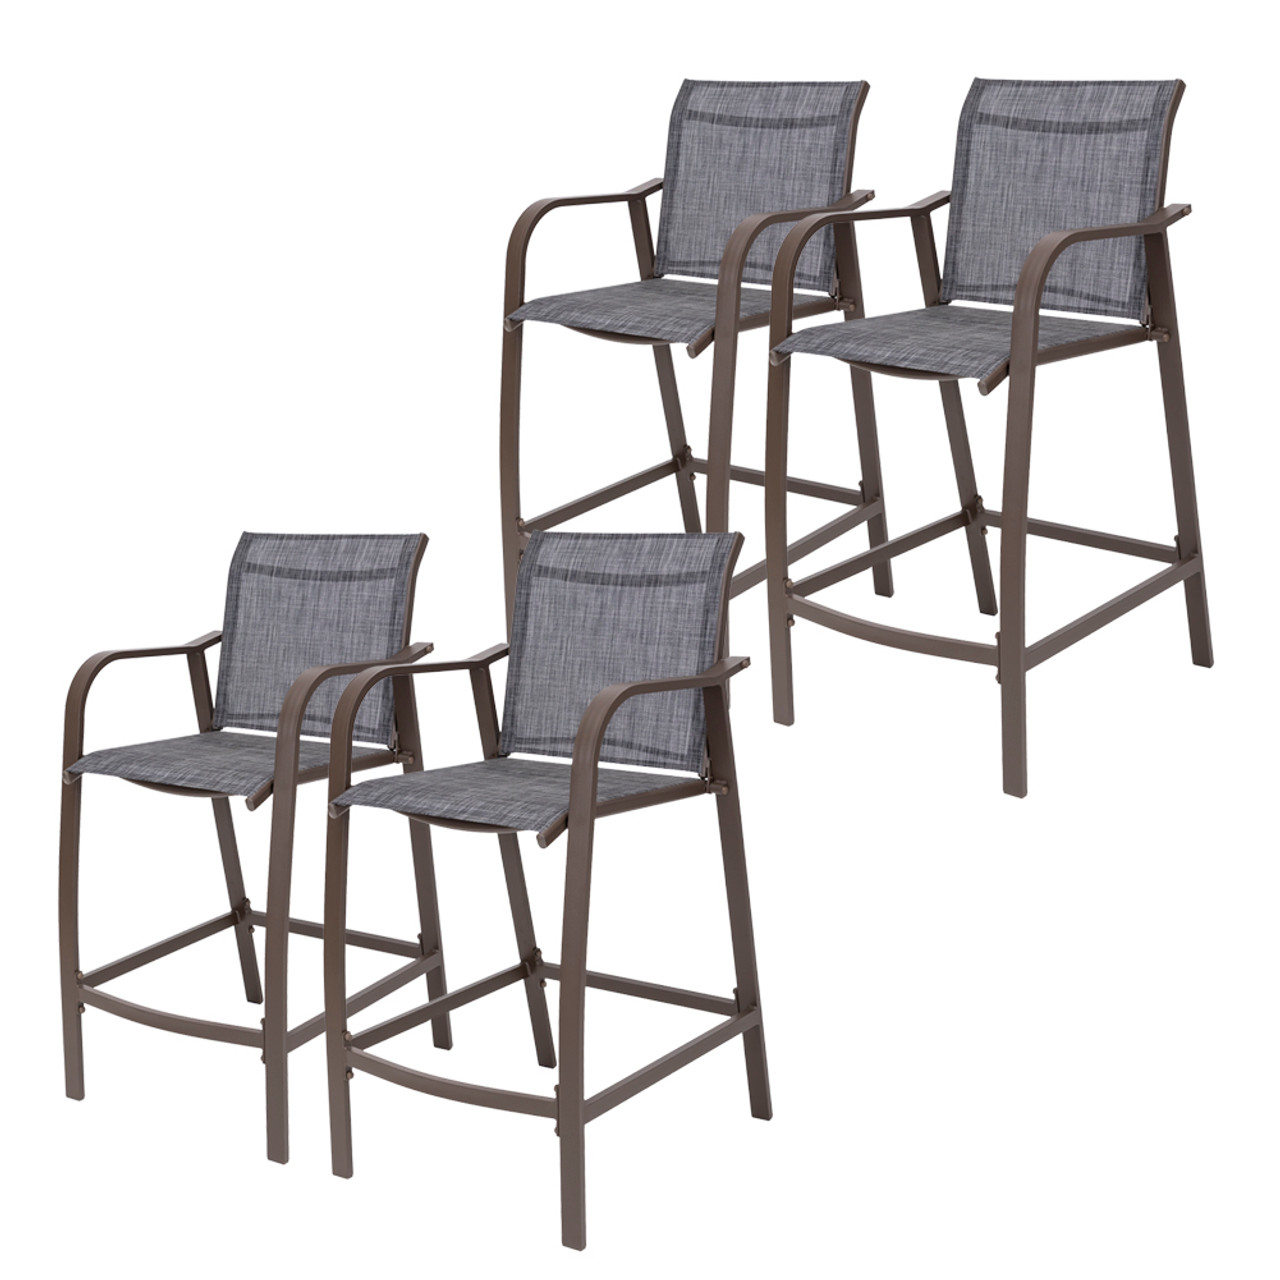 crestlive products 4 piece counter height bar stools all weather patio furniture